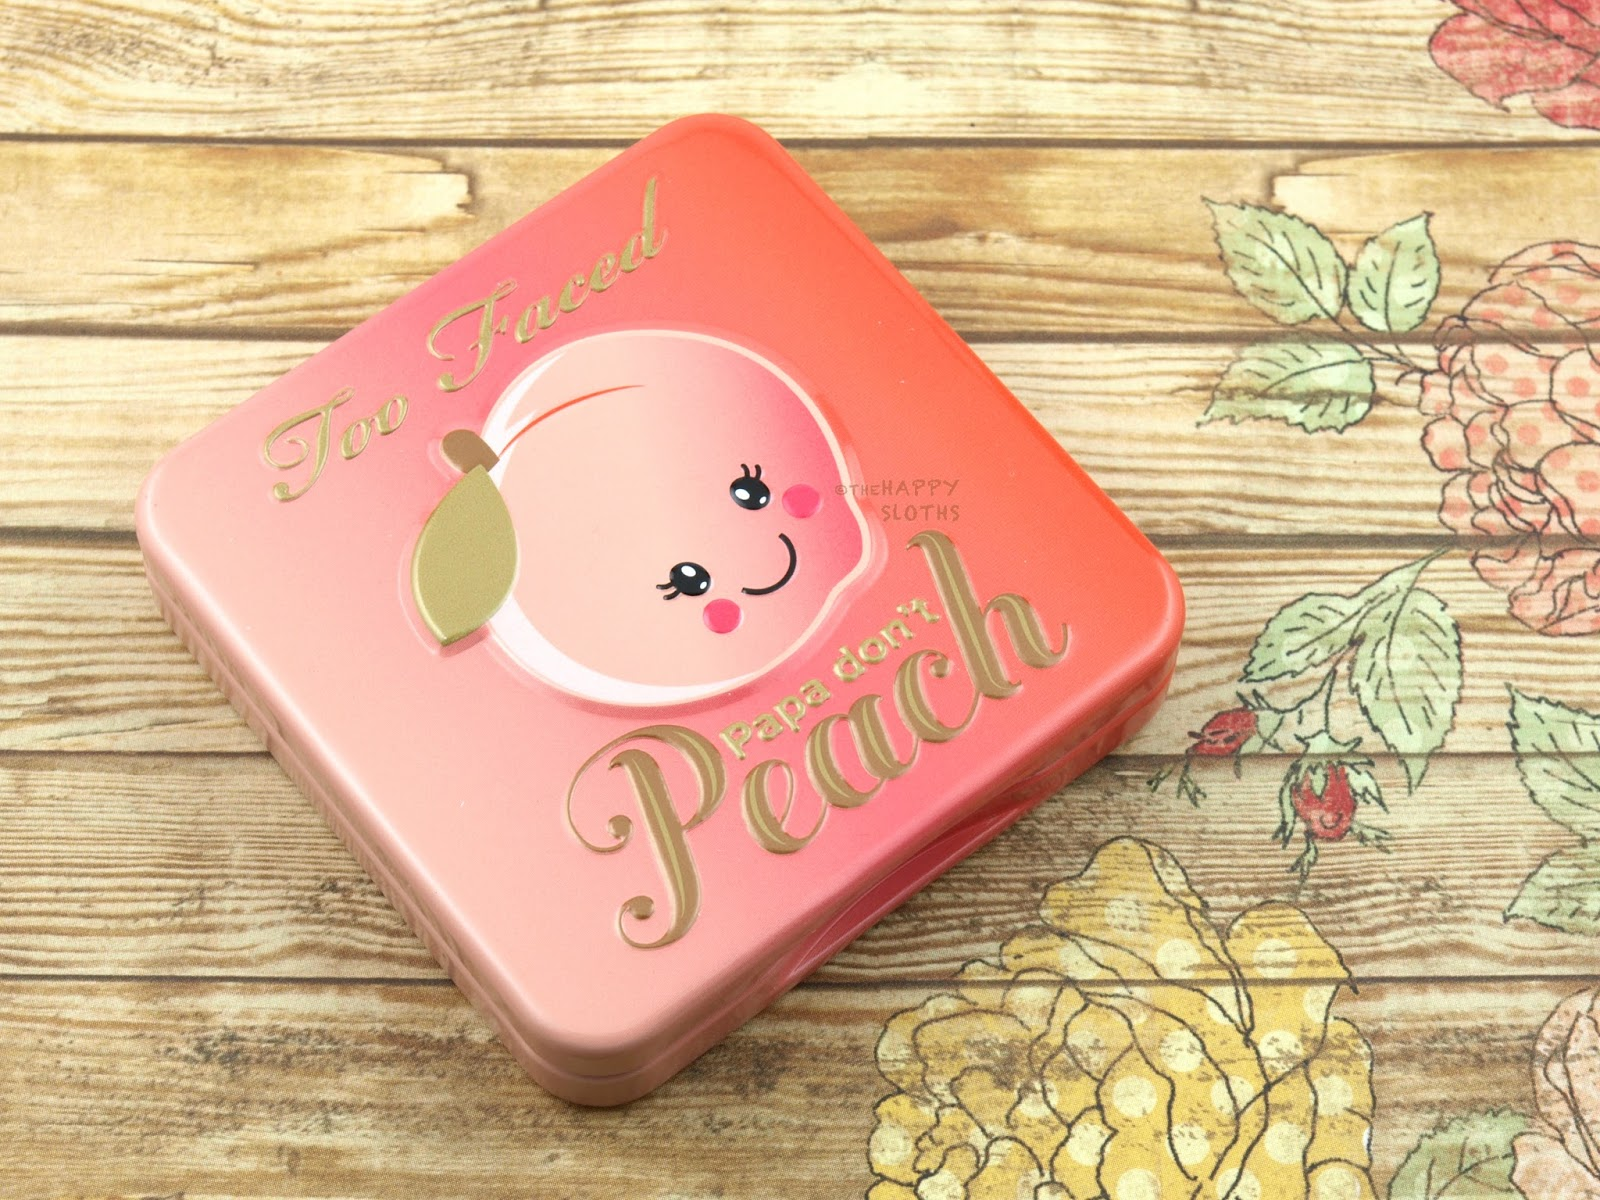 Too Faced Sweet Peach Papa Don't Peach Blush: Review and Swatches